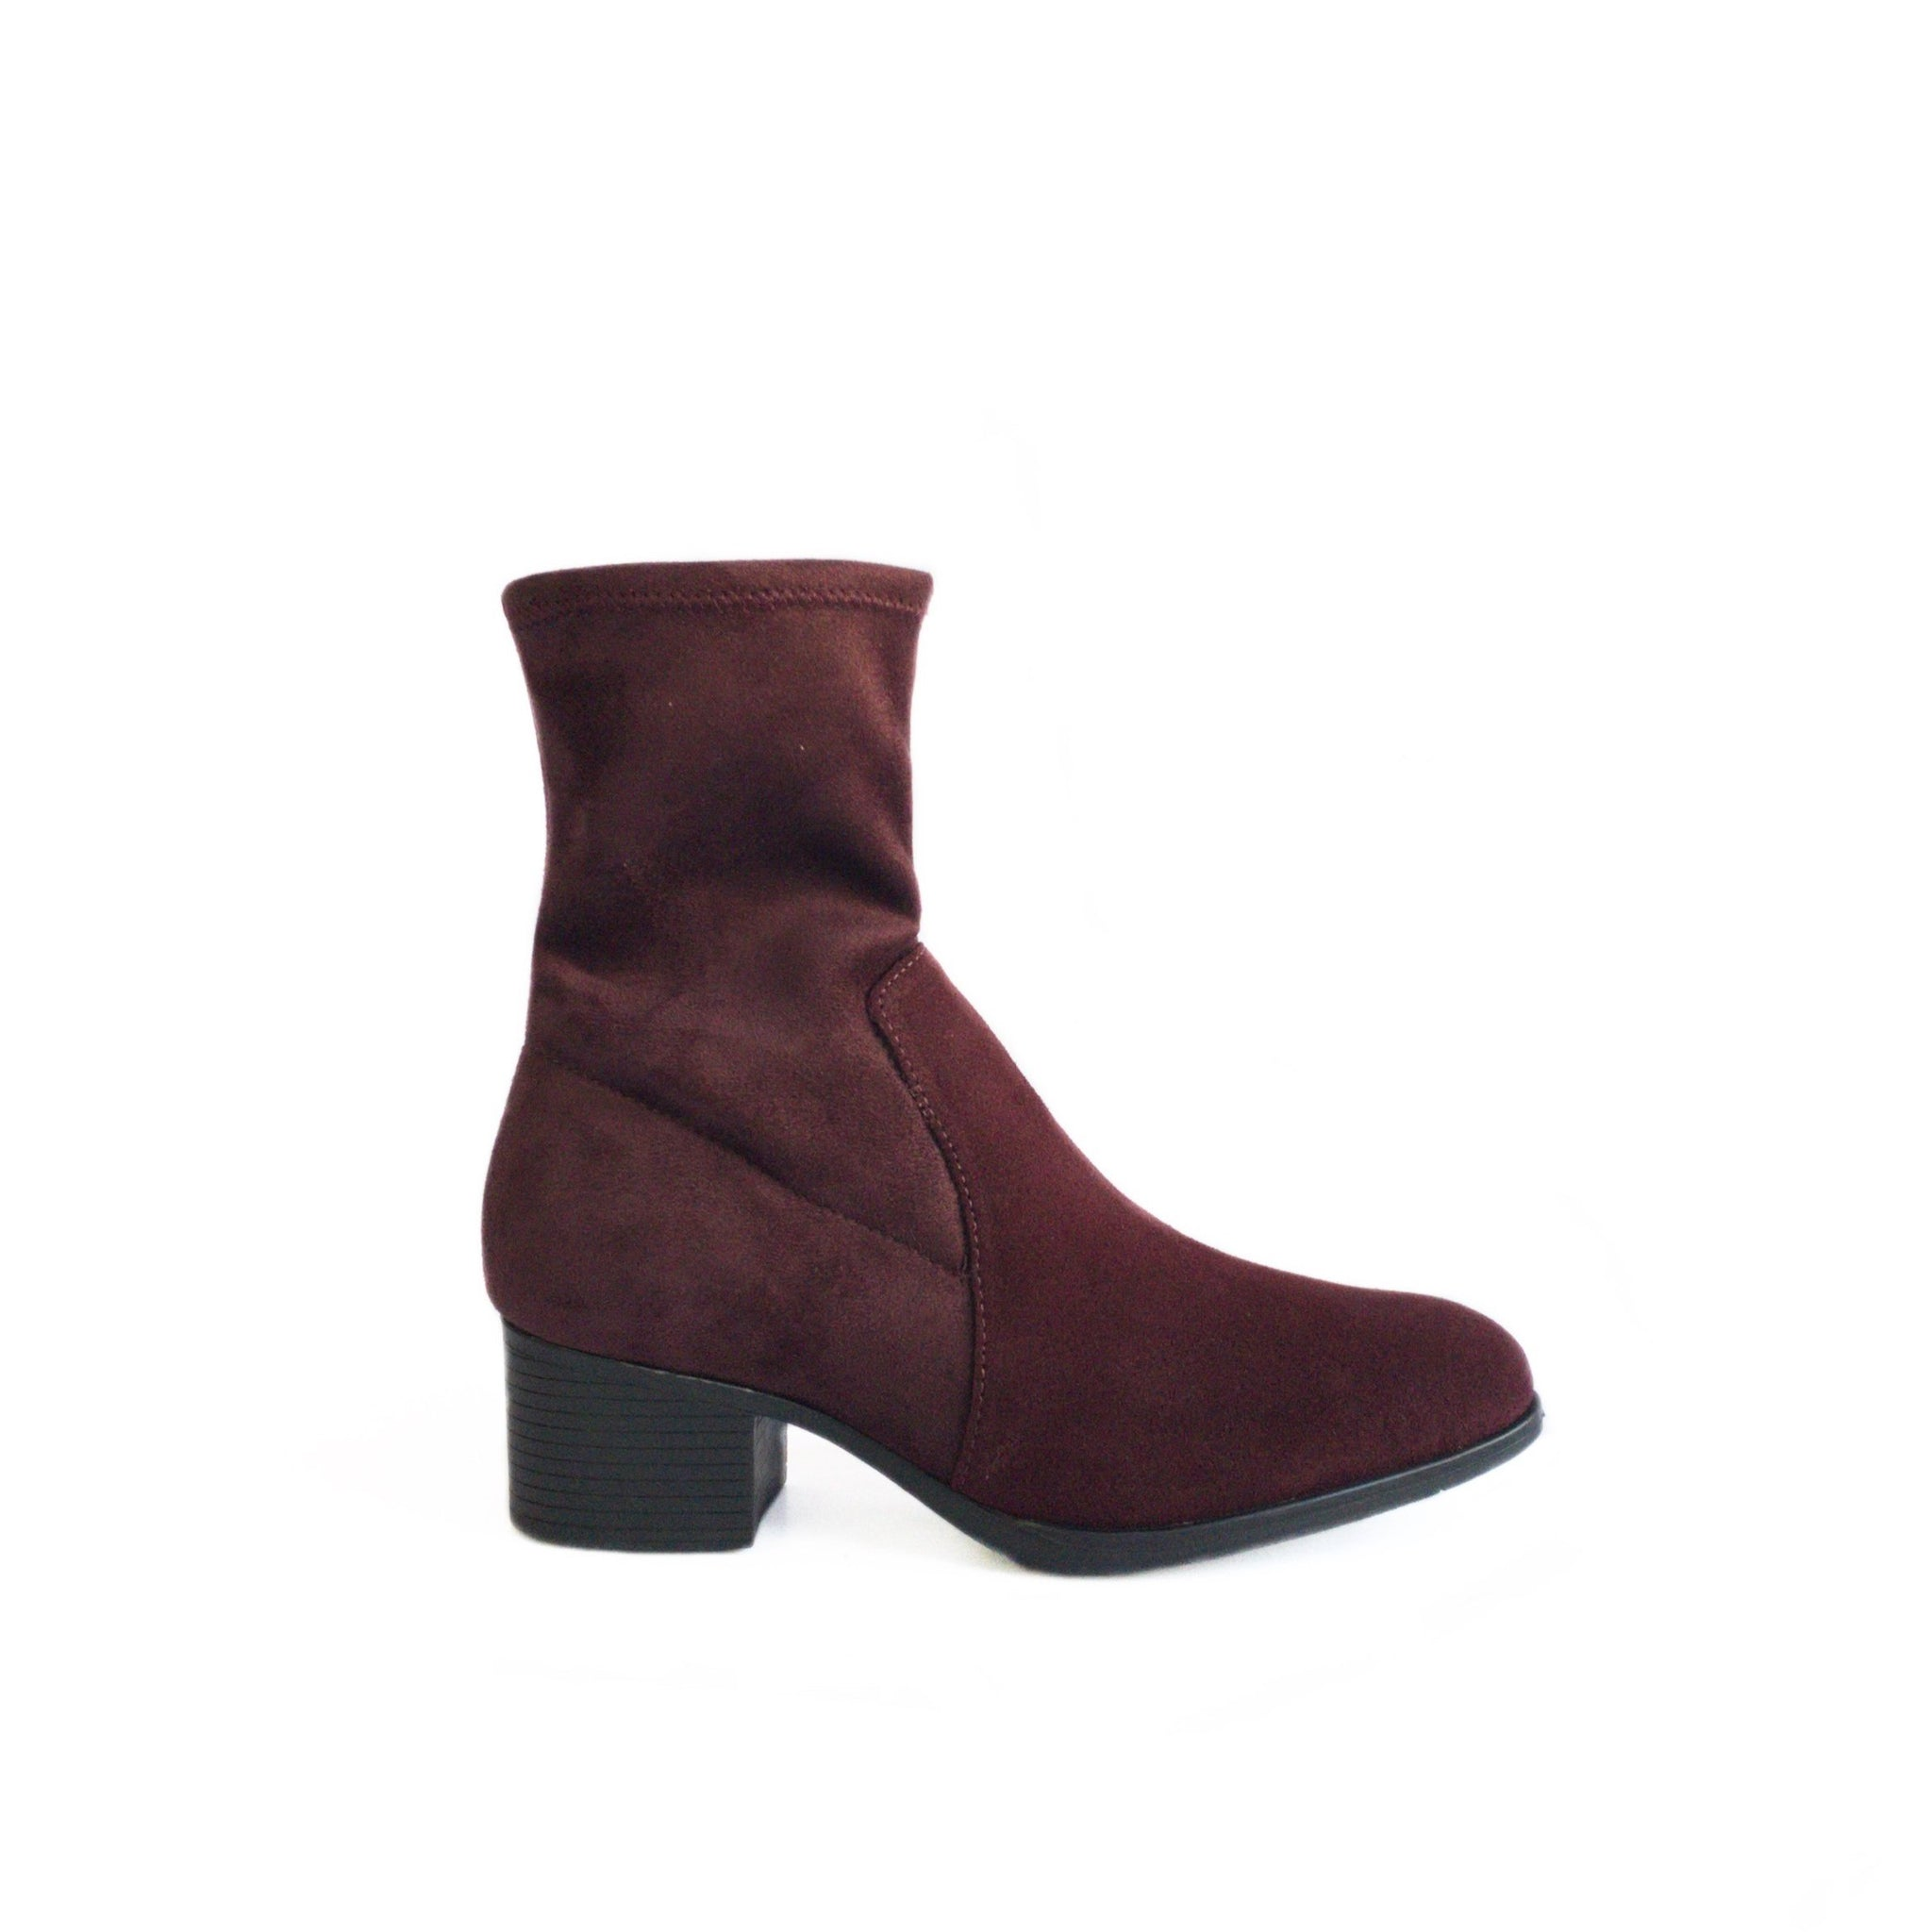 BOS & CO - RETAIN IN MERLOT SUEDE